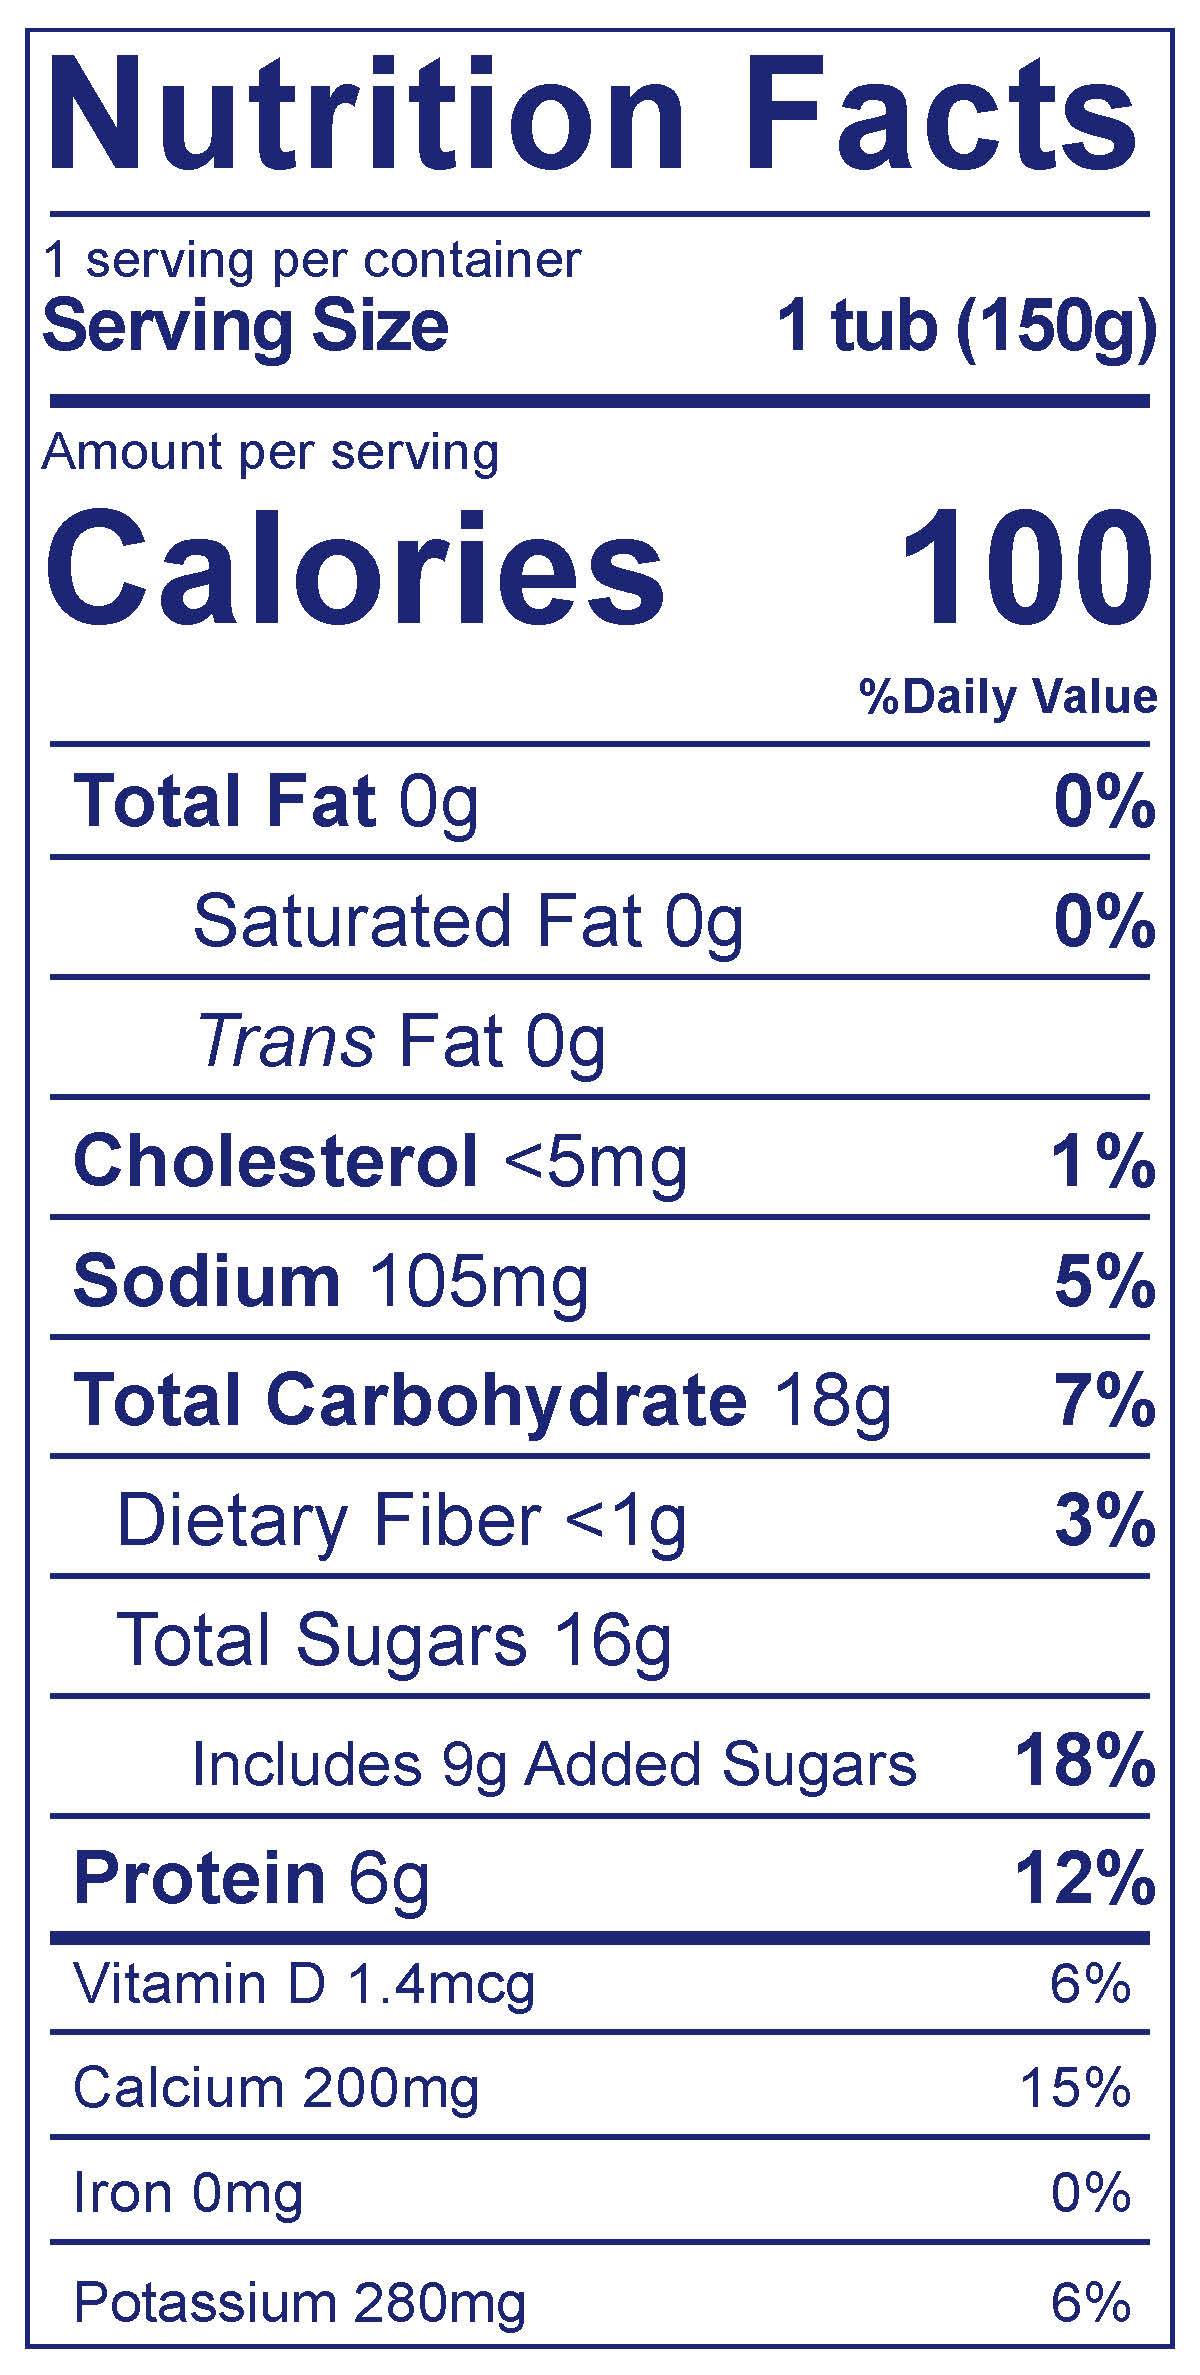 0% Fat Blueberry - Nutrition Facts